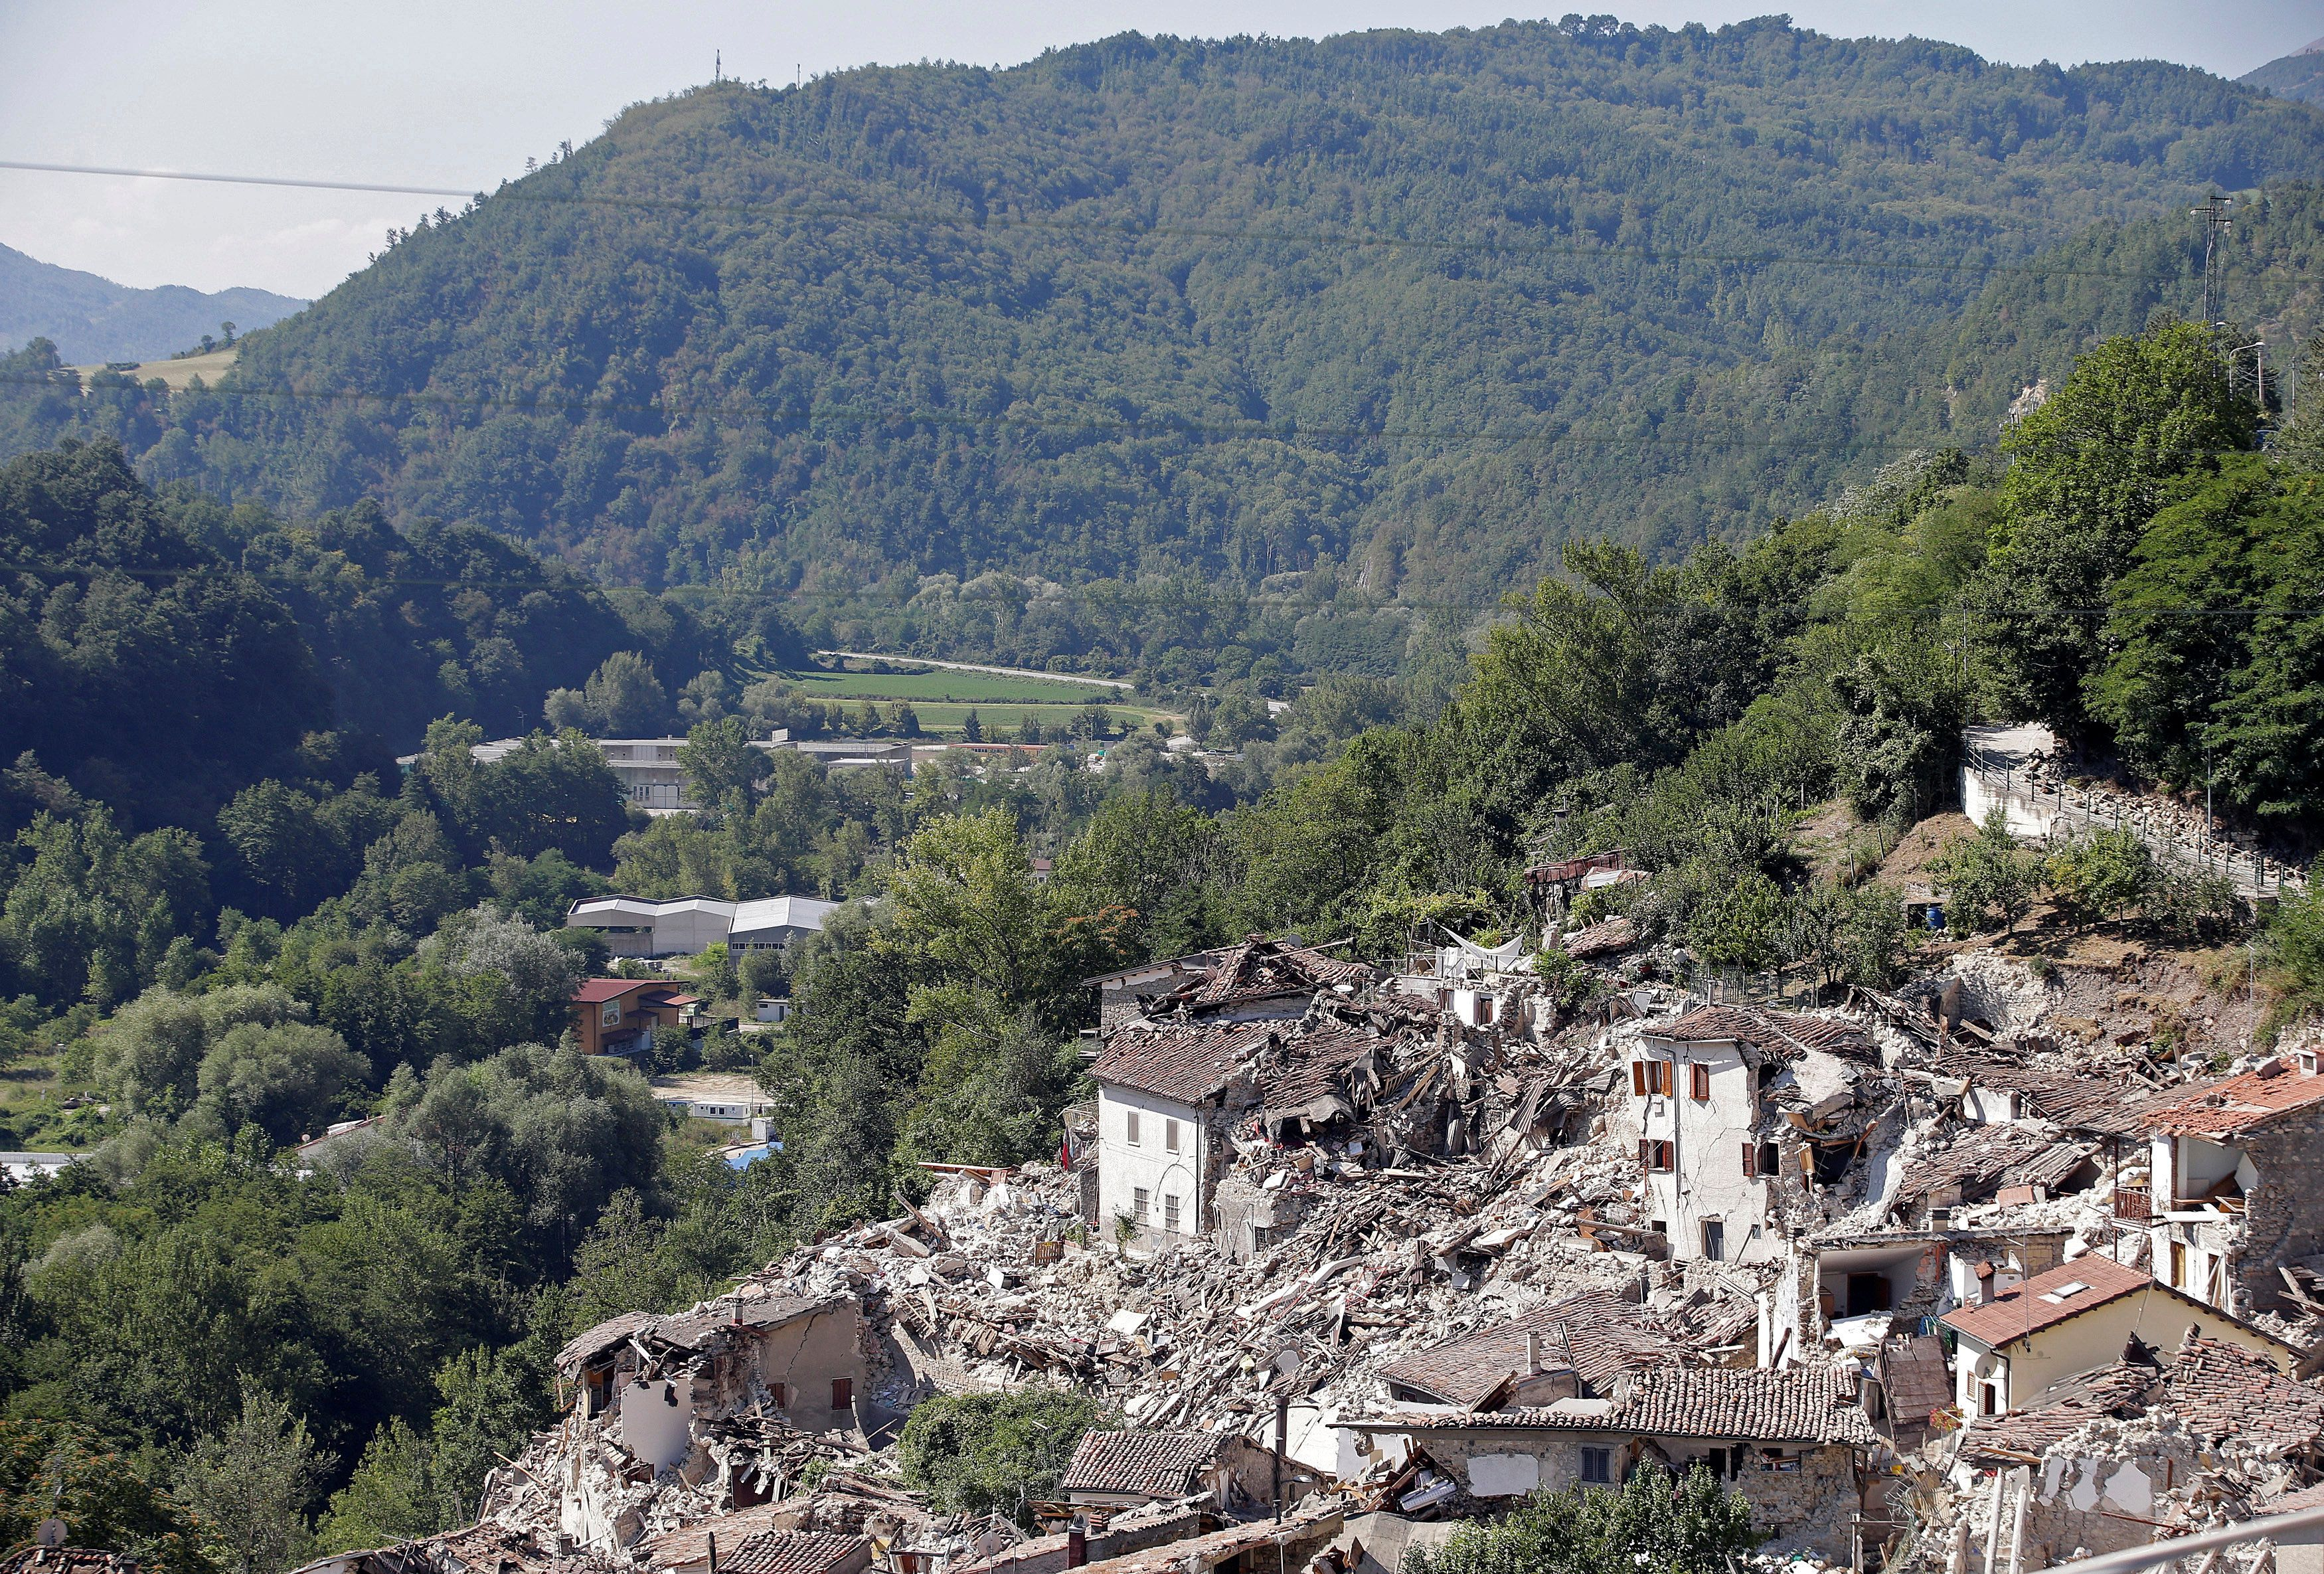 Collapsed houses are seen following an earthquake in Pescara del Tronto, central Italy, August 26, 2016. REUTERS/Max Rossi